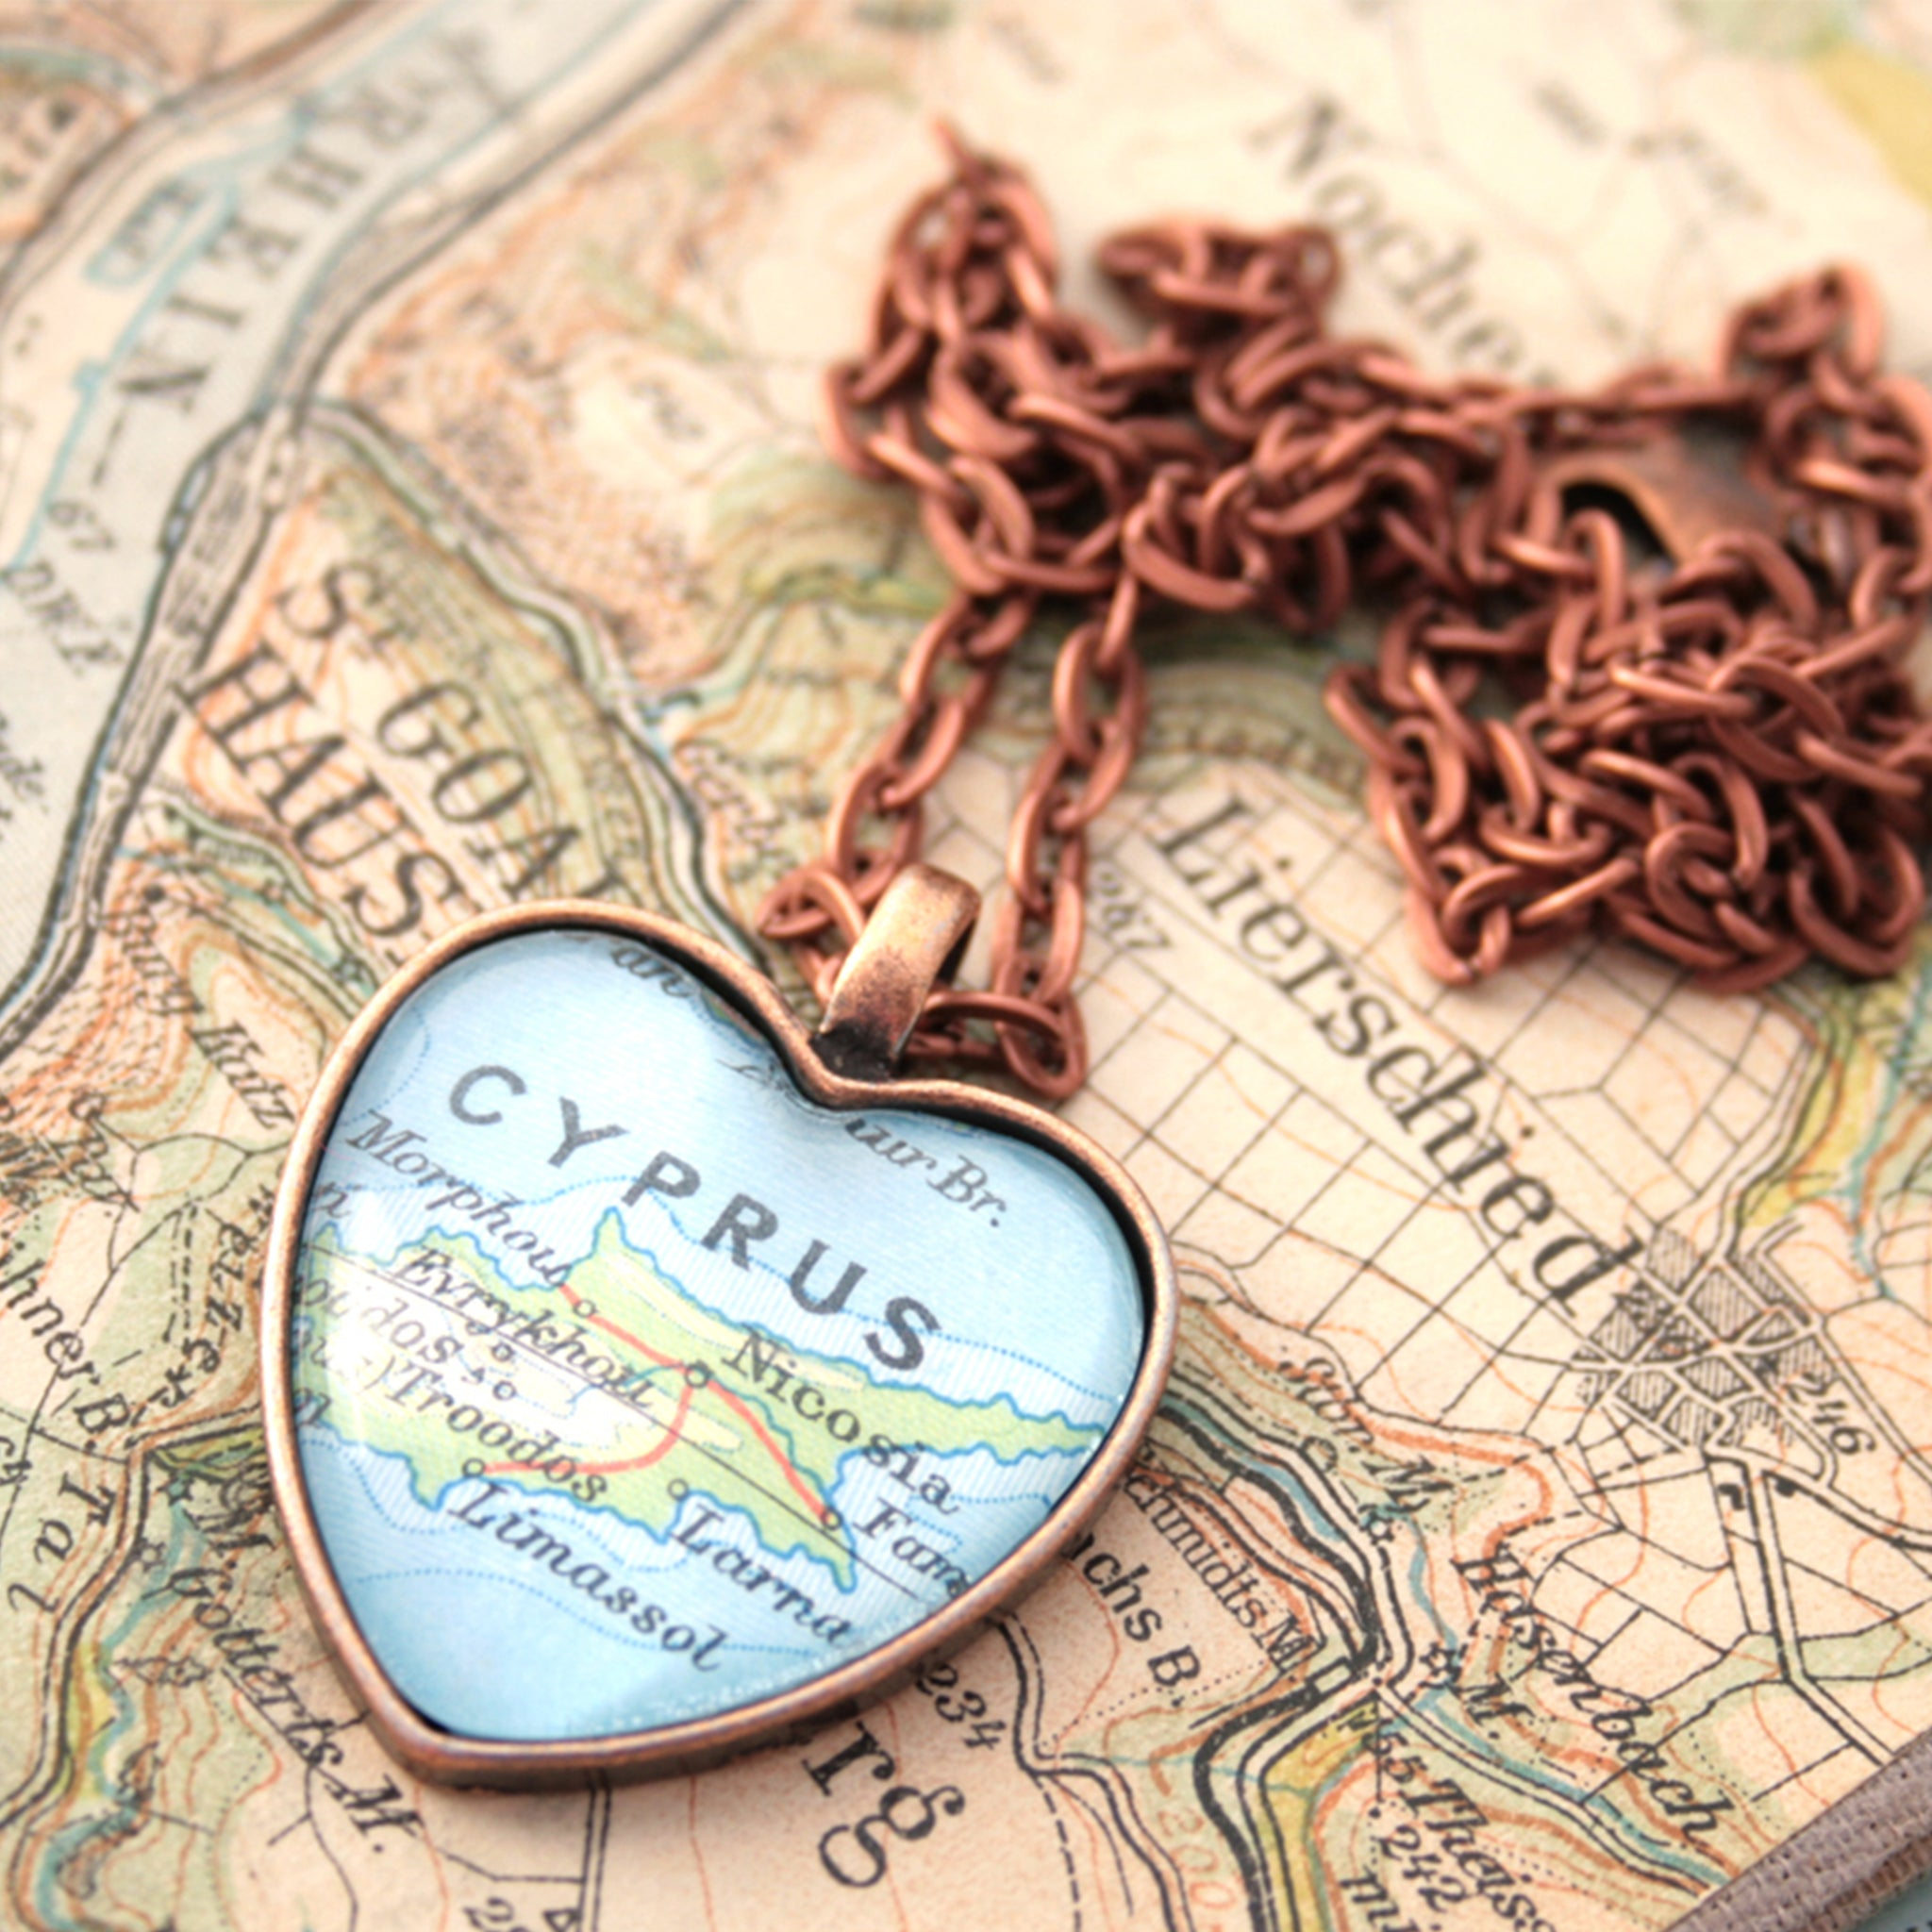 Heart shaped pendant necklace in copper tone featuring map of Cyprus